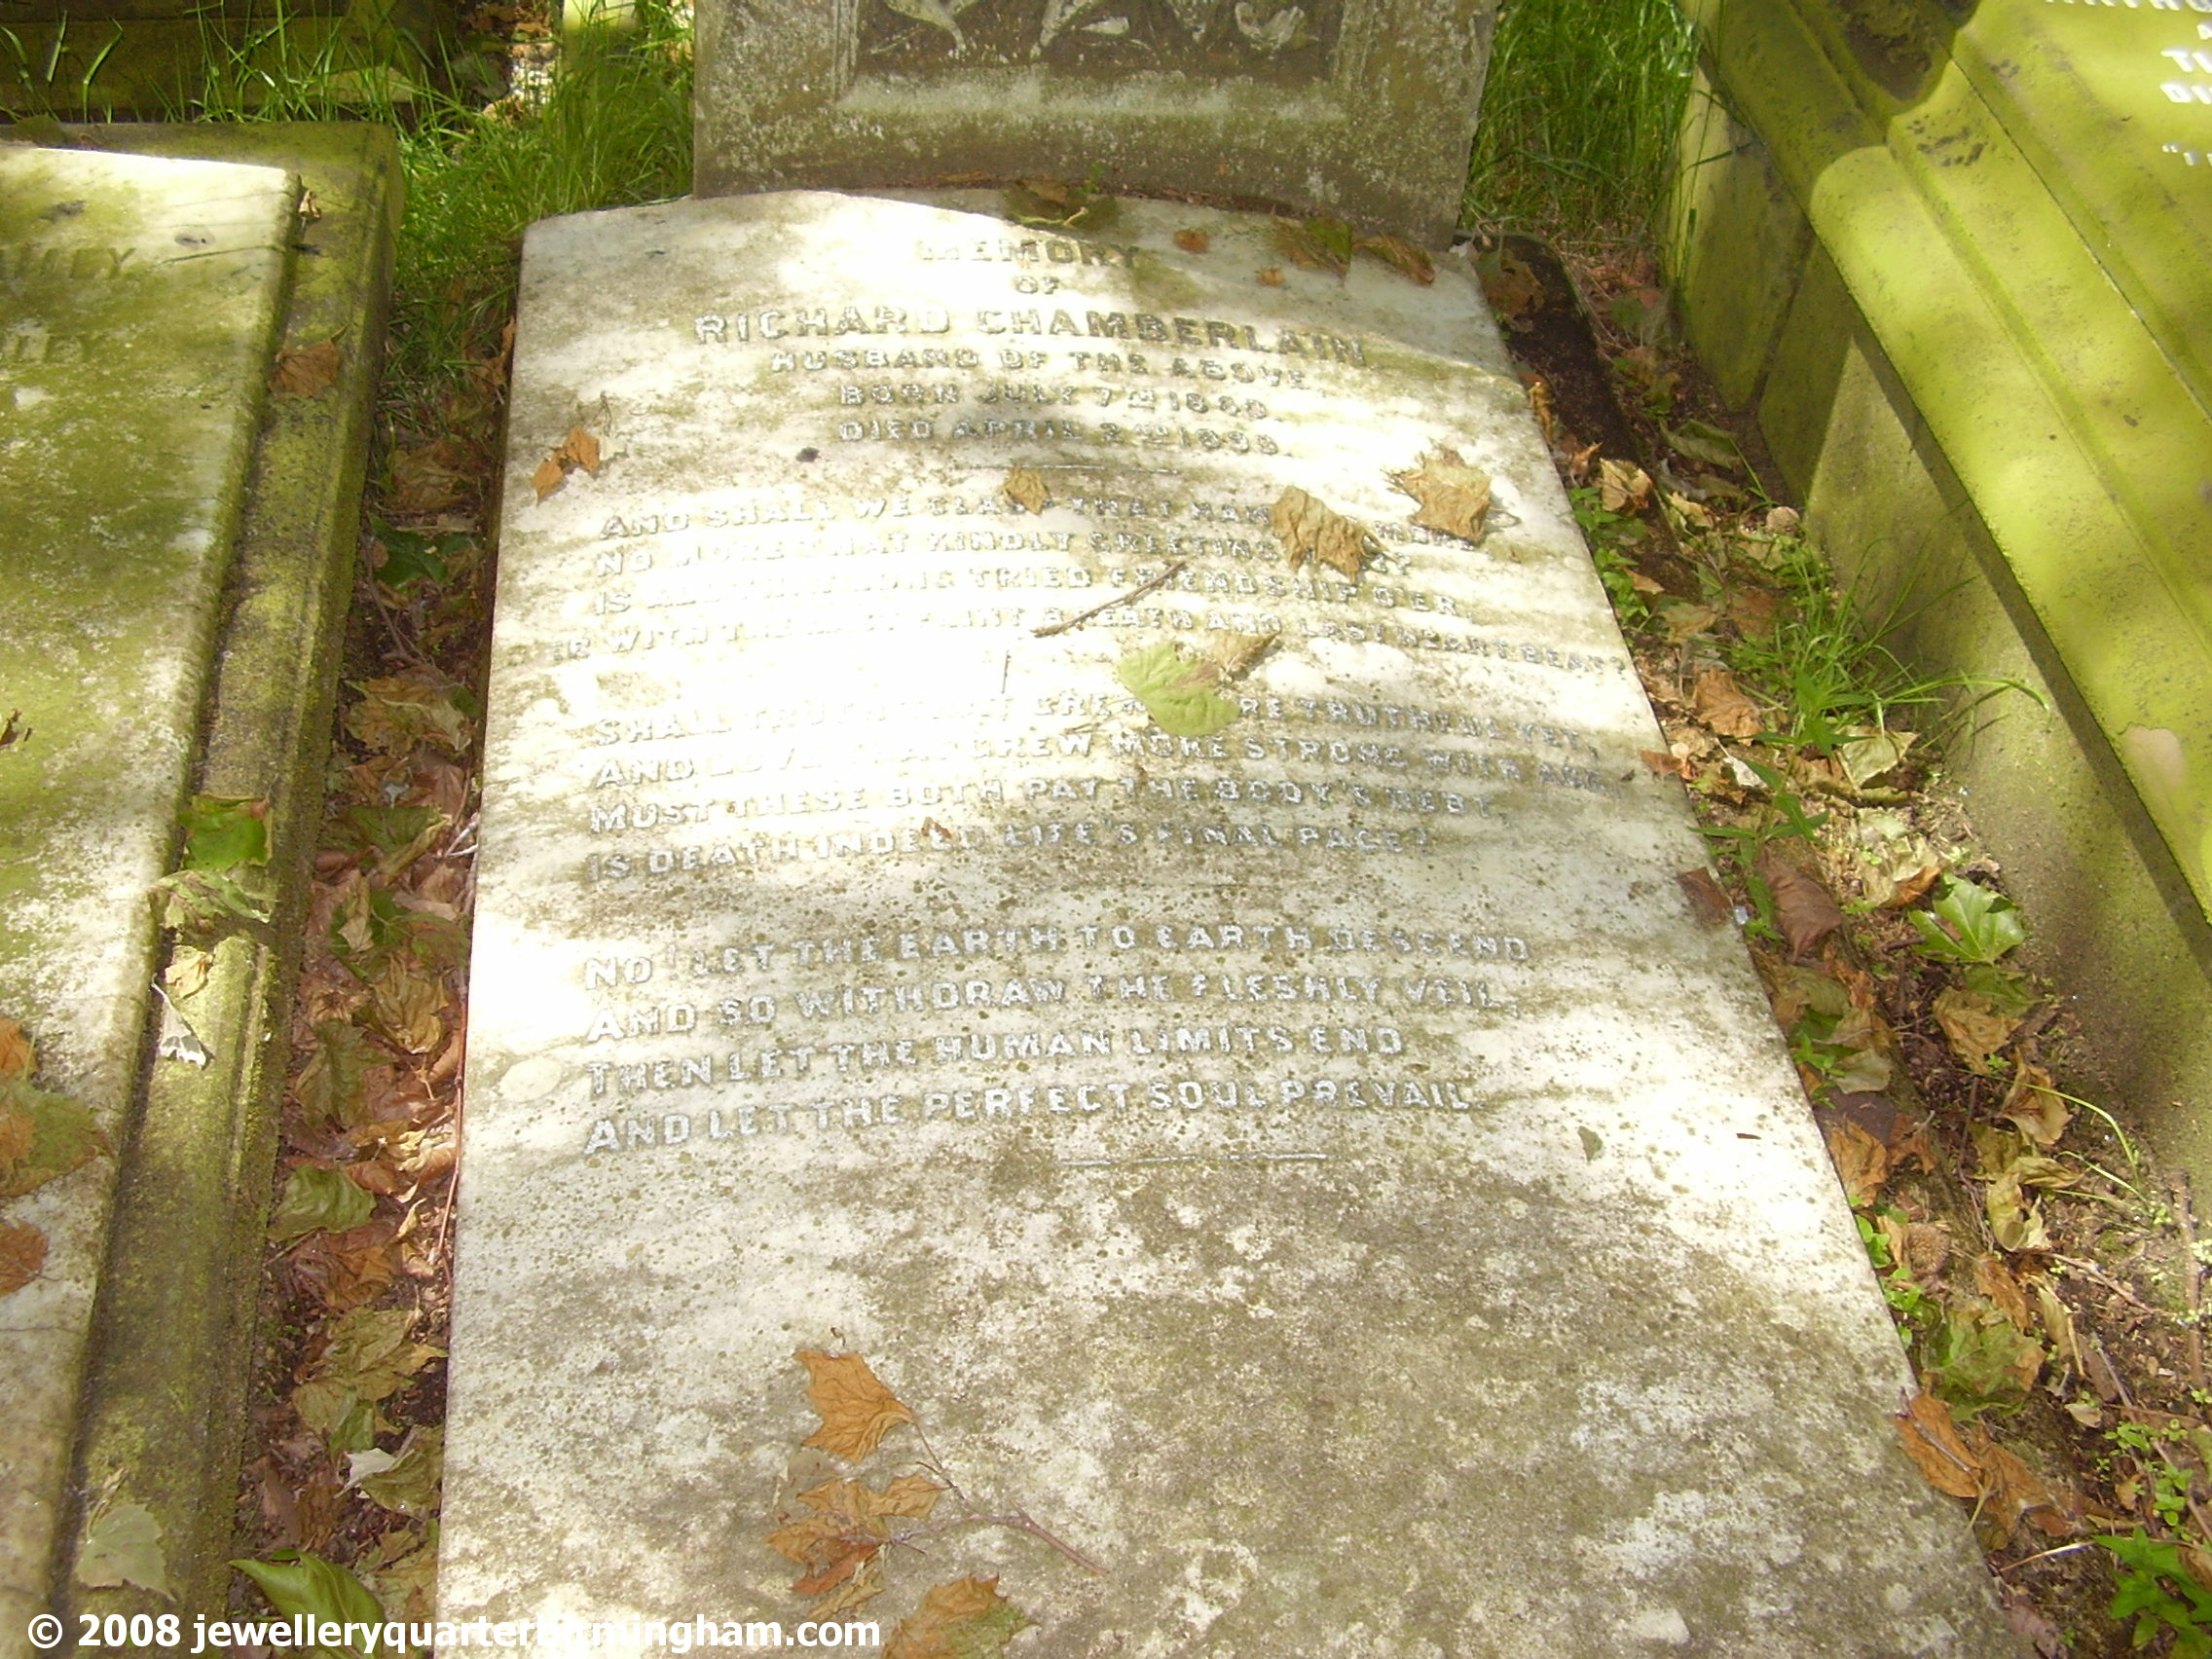 The-grave-in-Key-Hill-Cemetery-of-Richard-Chamberlain.jpg 2008